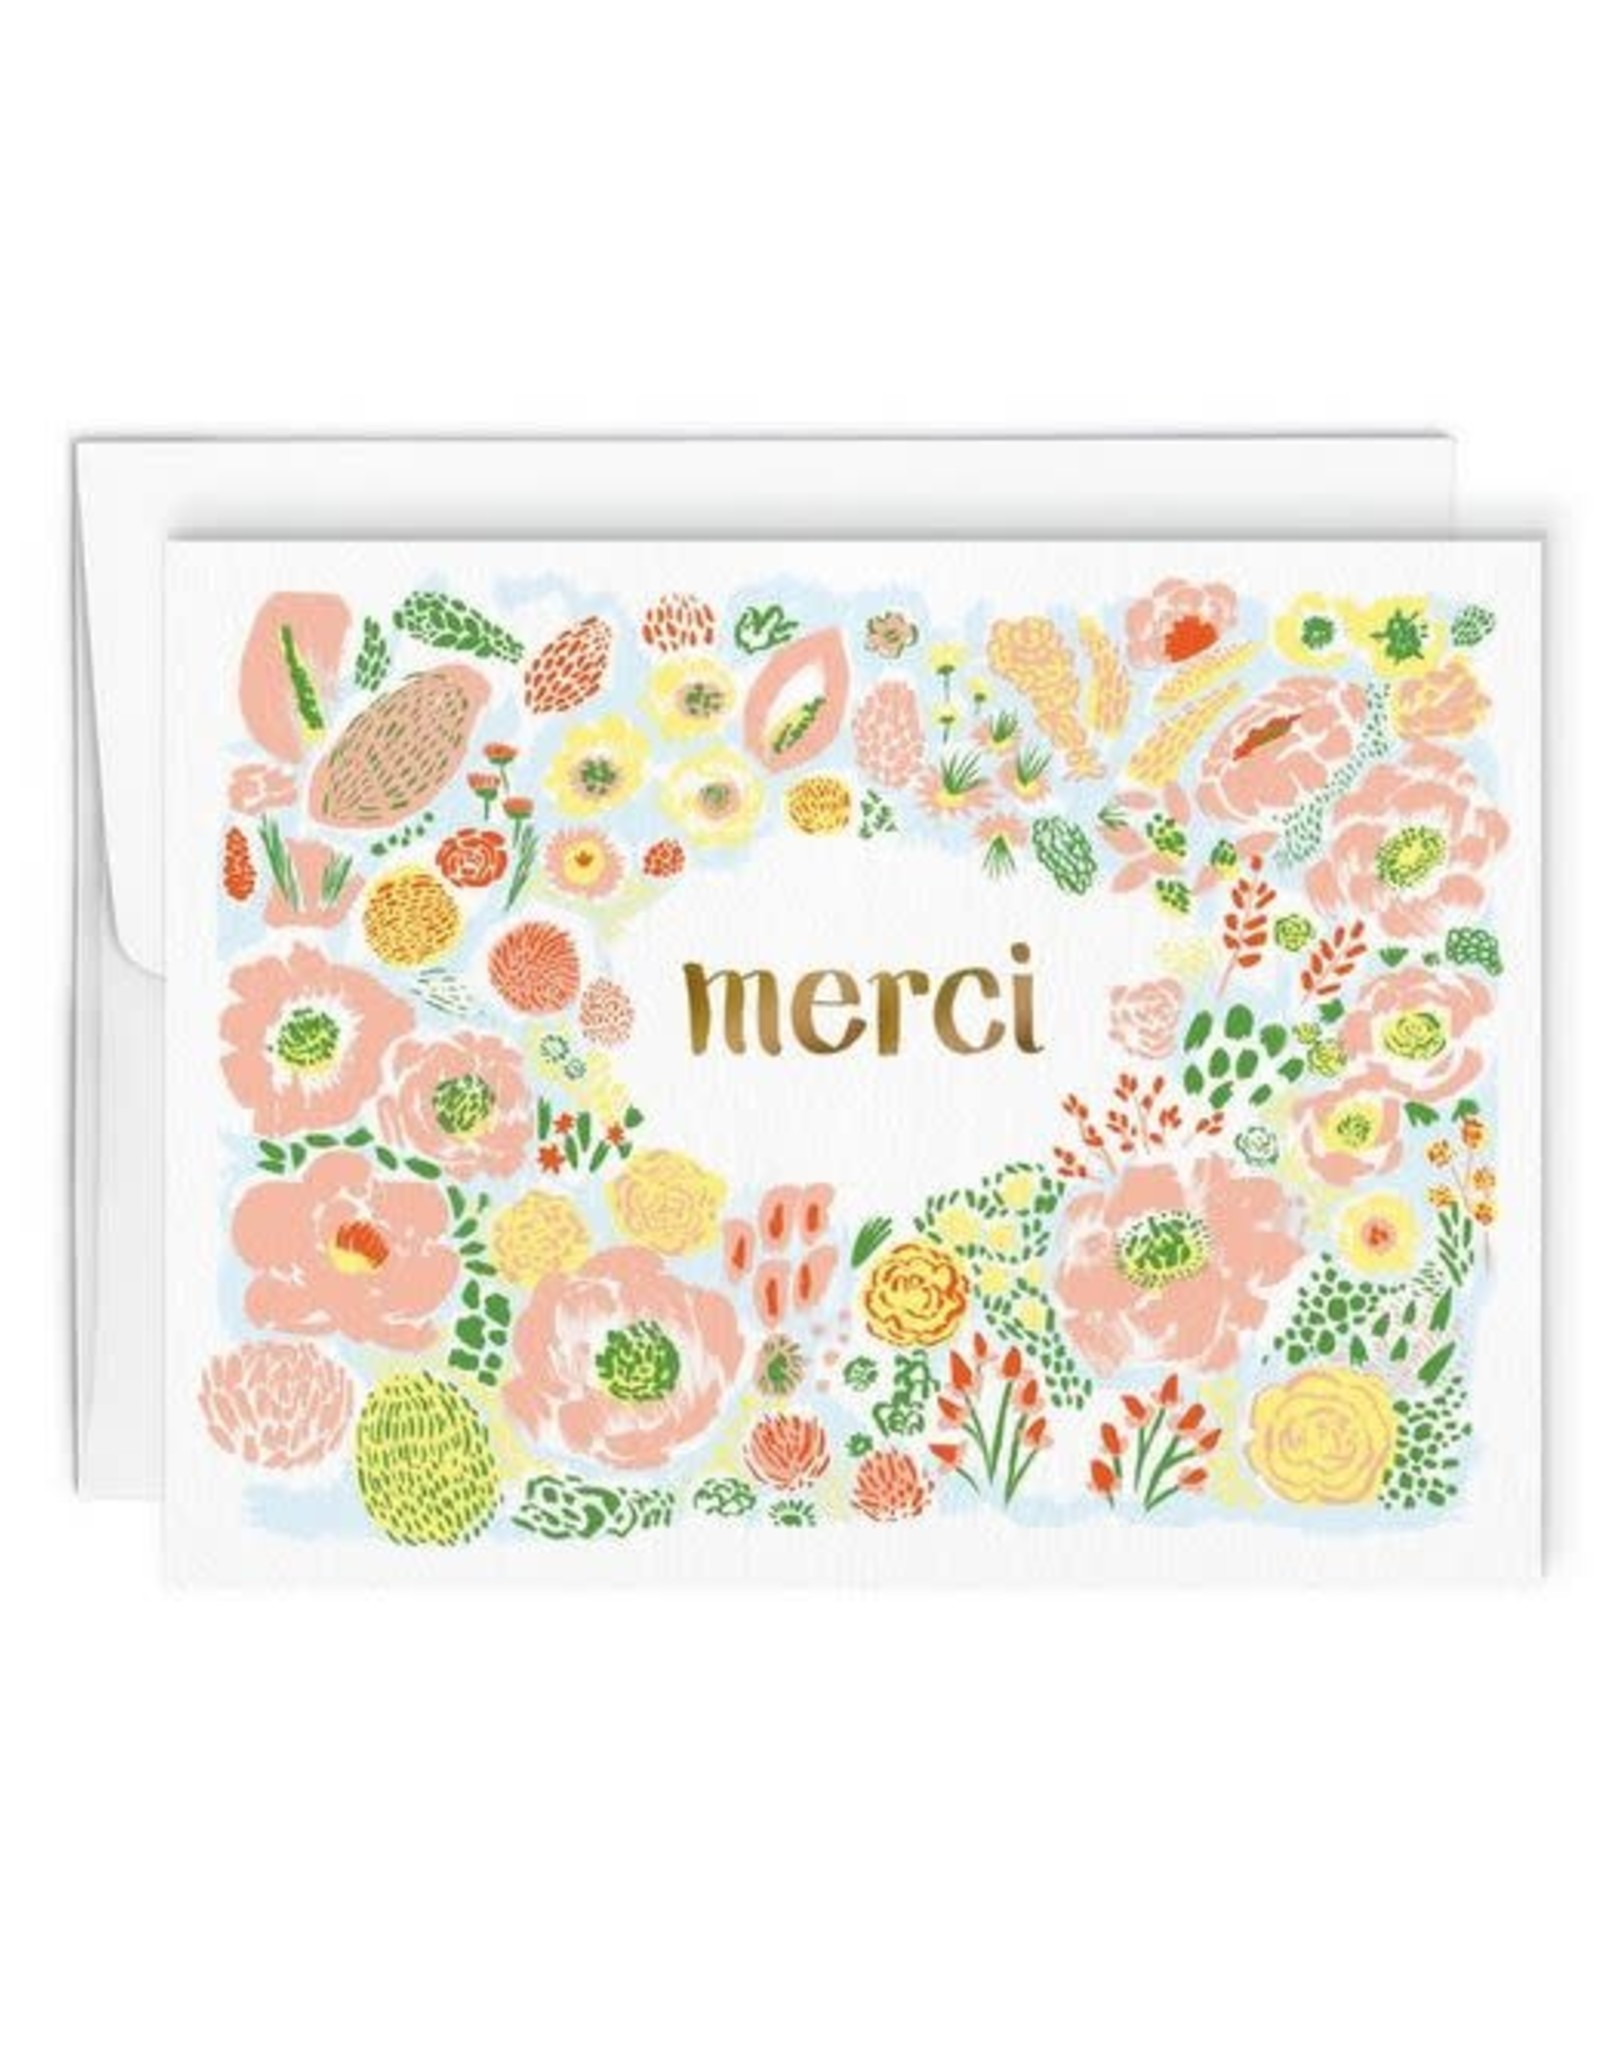 Paperole Greeting Card - Merci - by Gabrielle Lamontagne